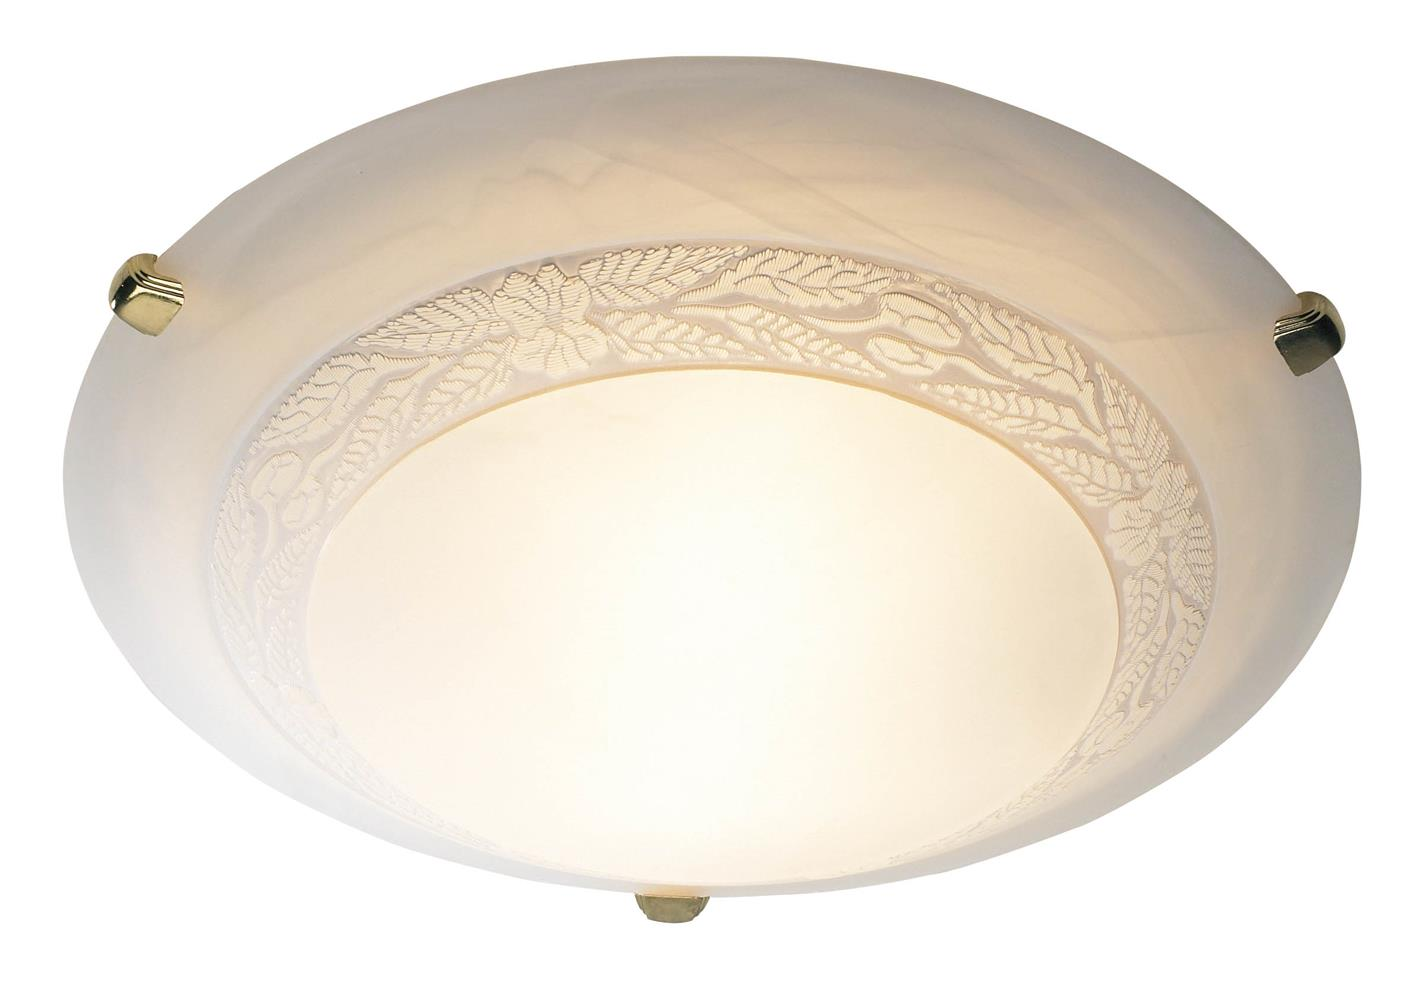 Dar DAM19502 Damask spare 40cm glass for DAM502